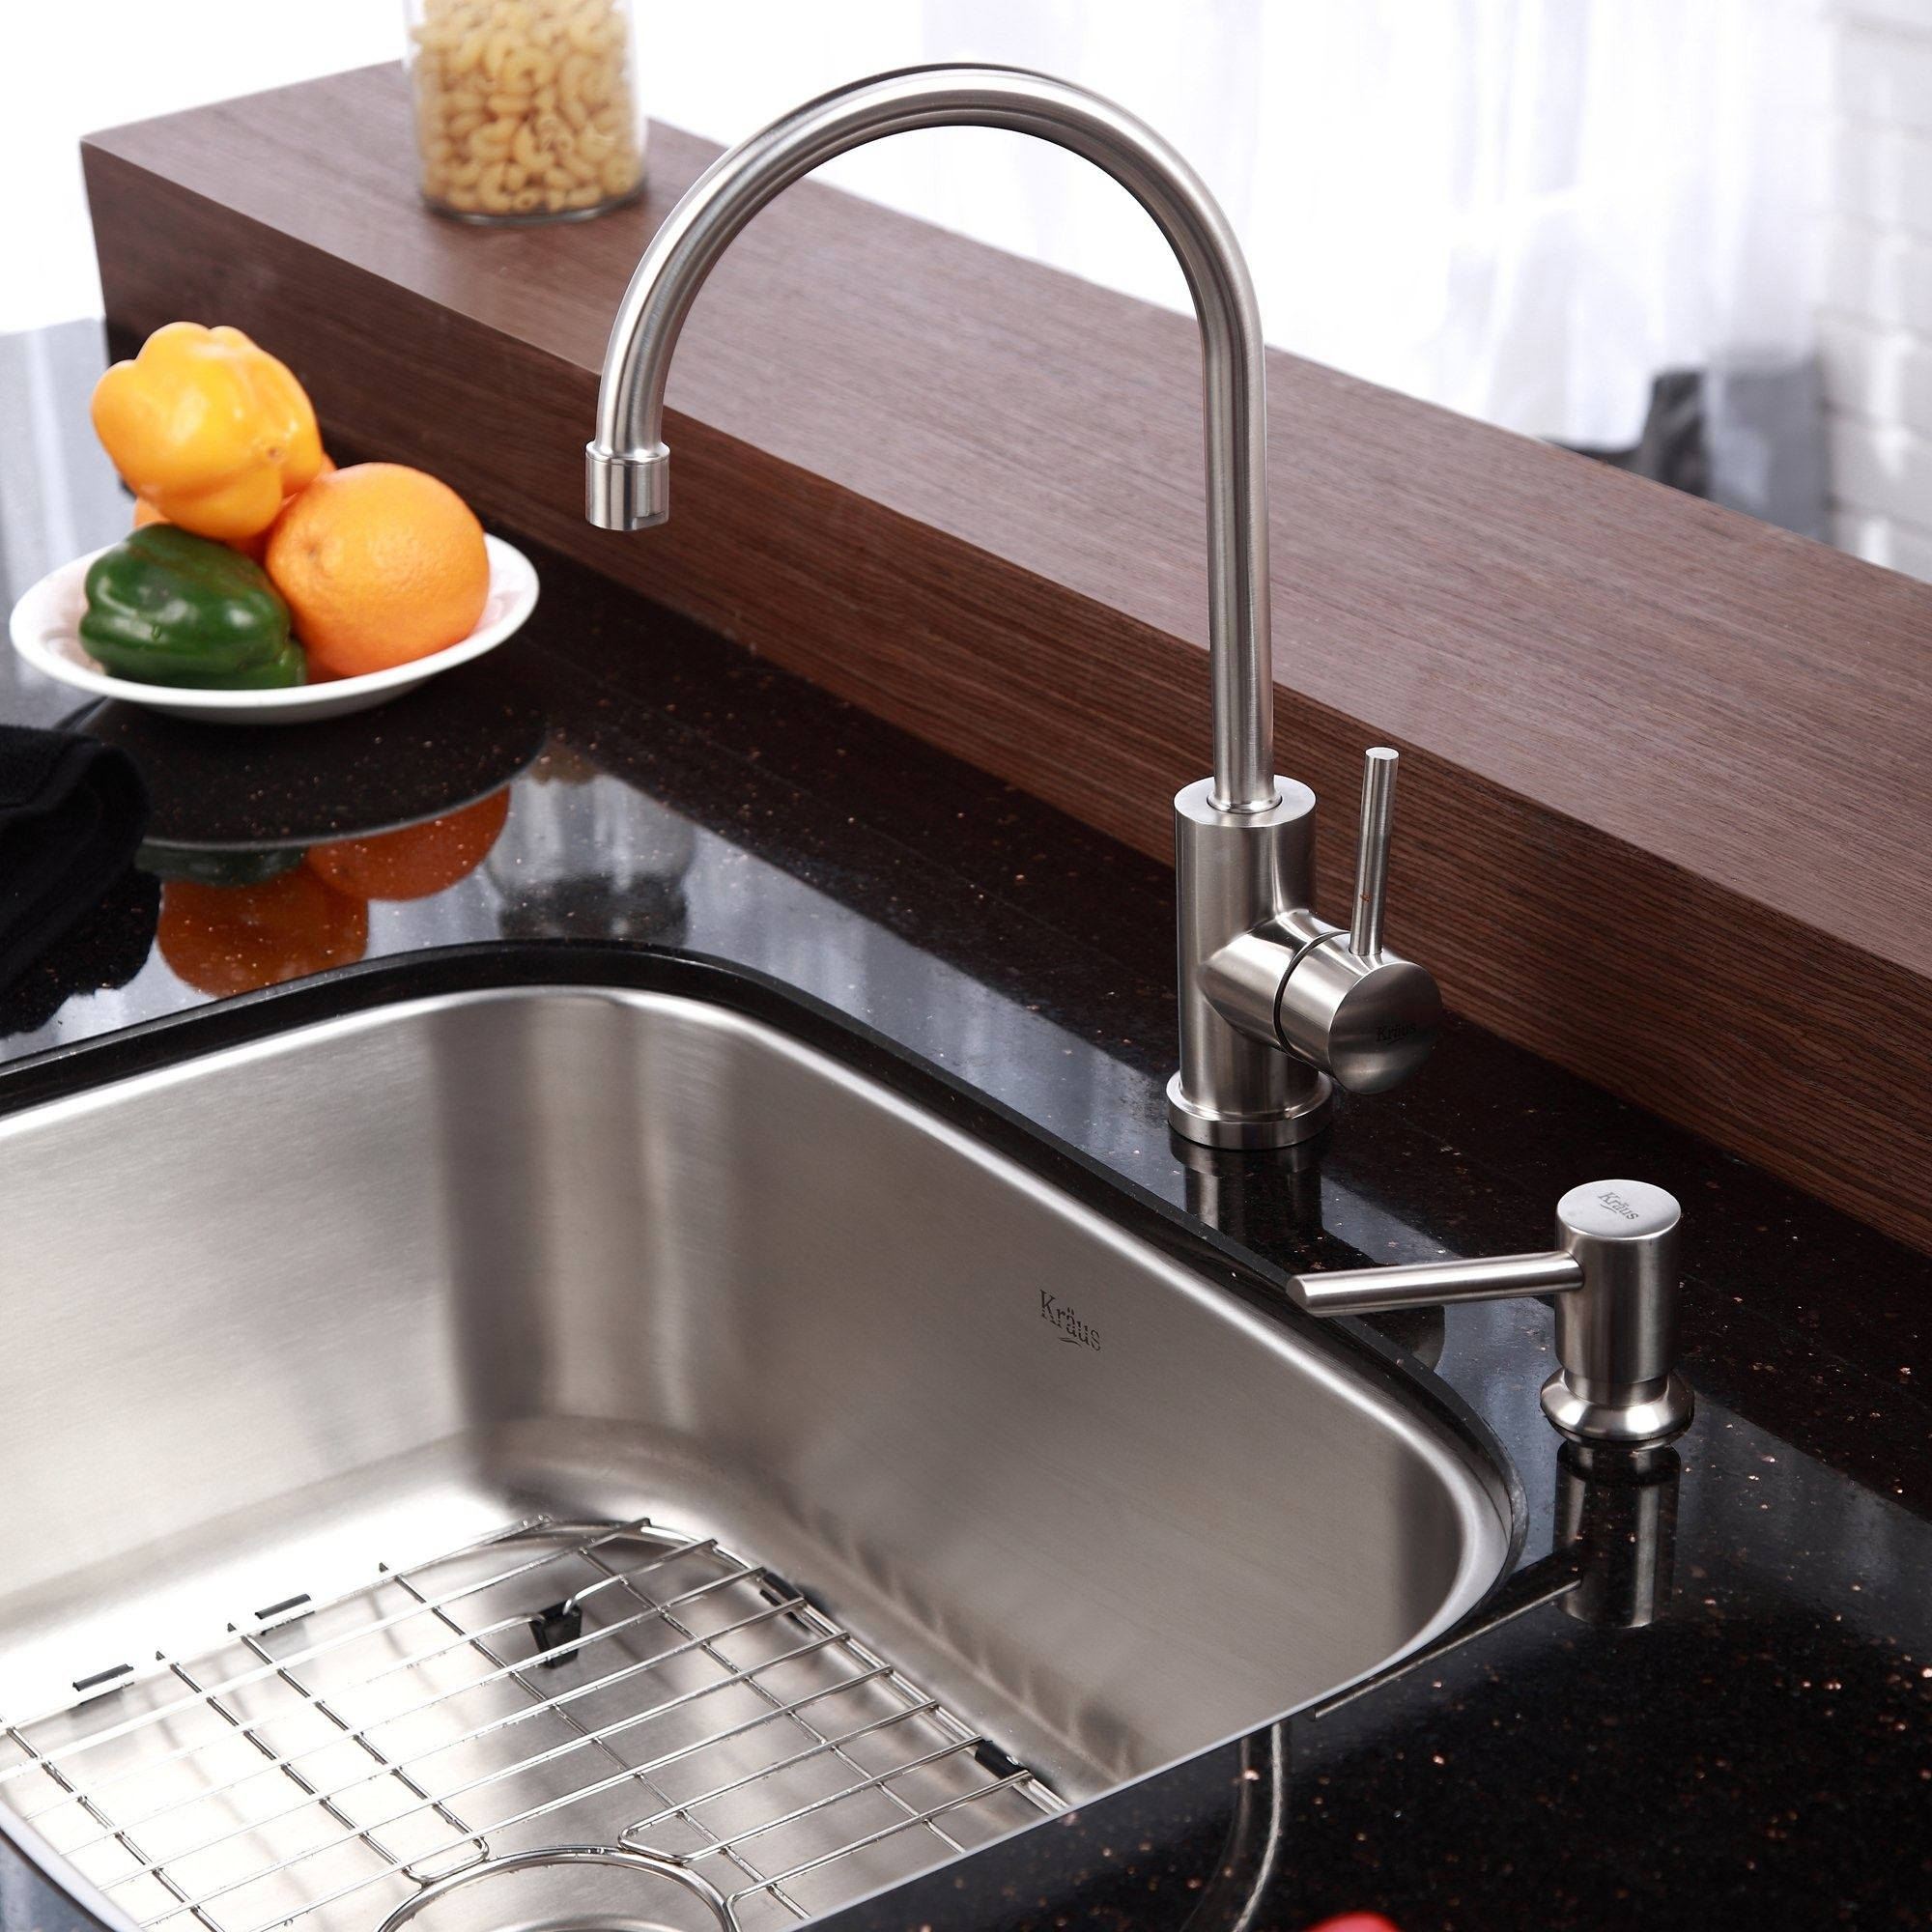 kitchen sink soap dispenser with granite countertop | House ...